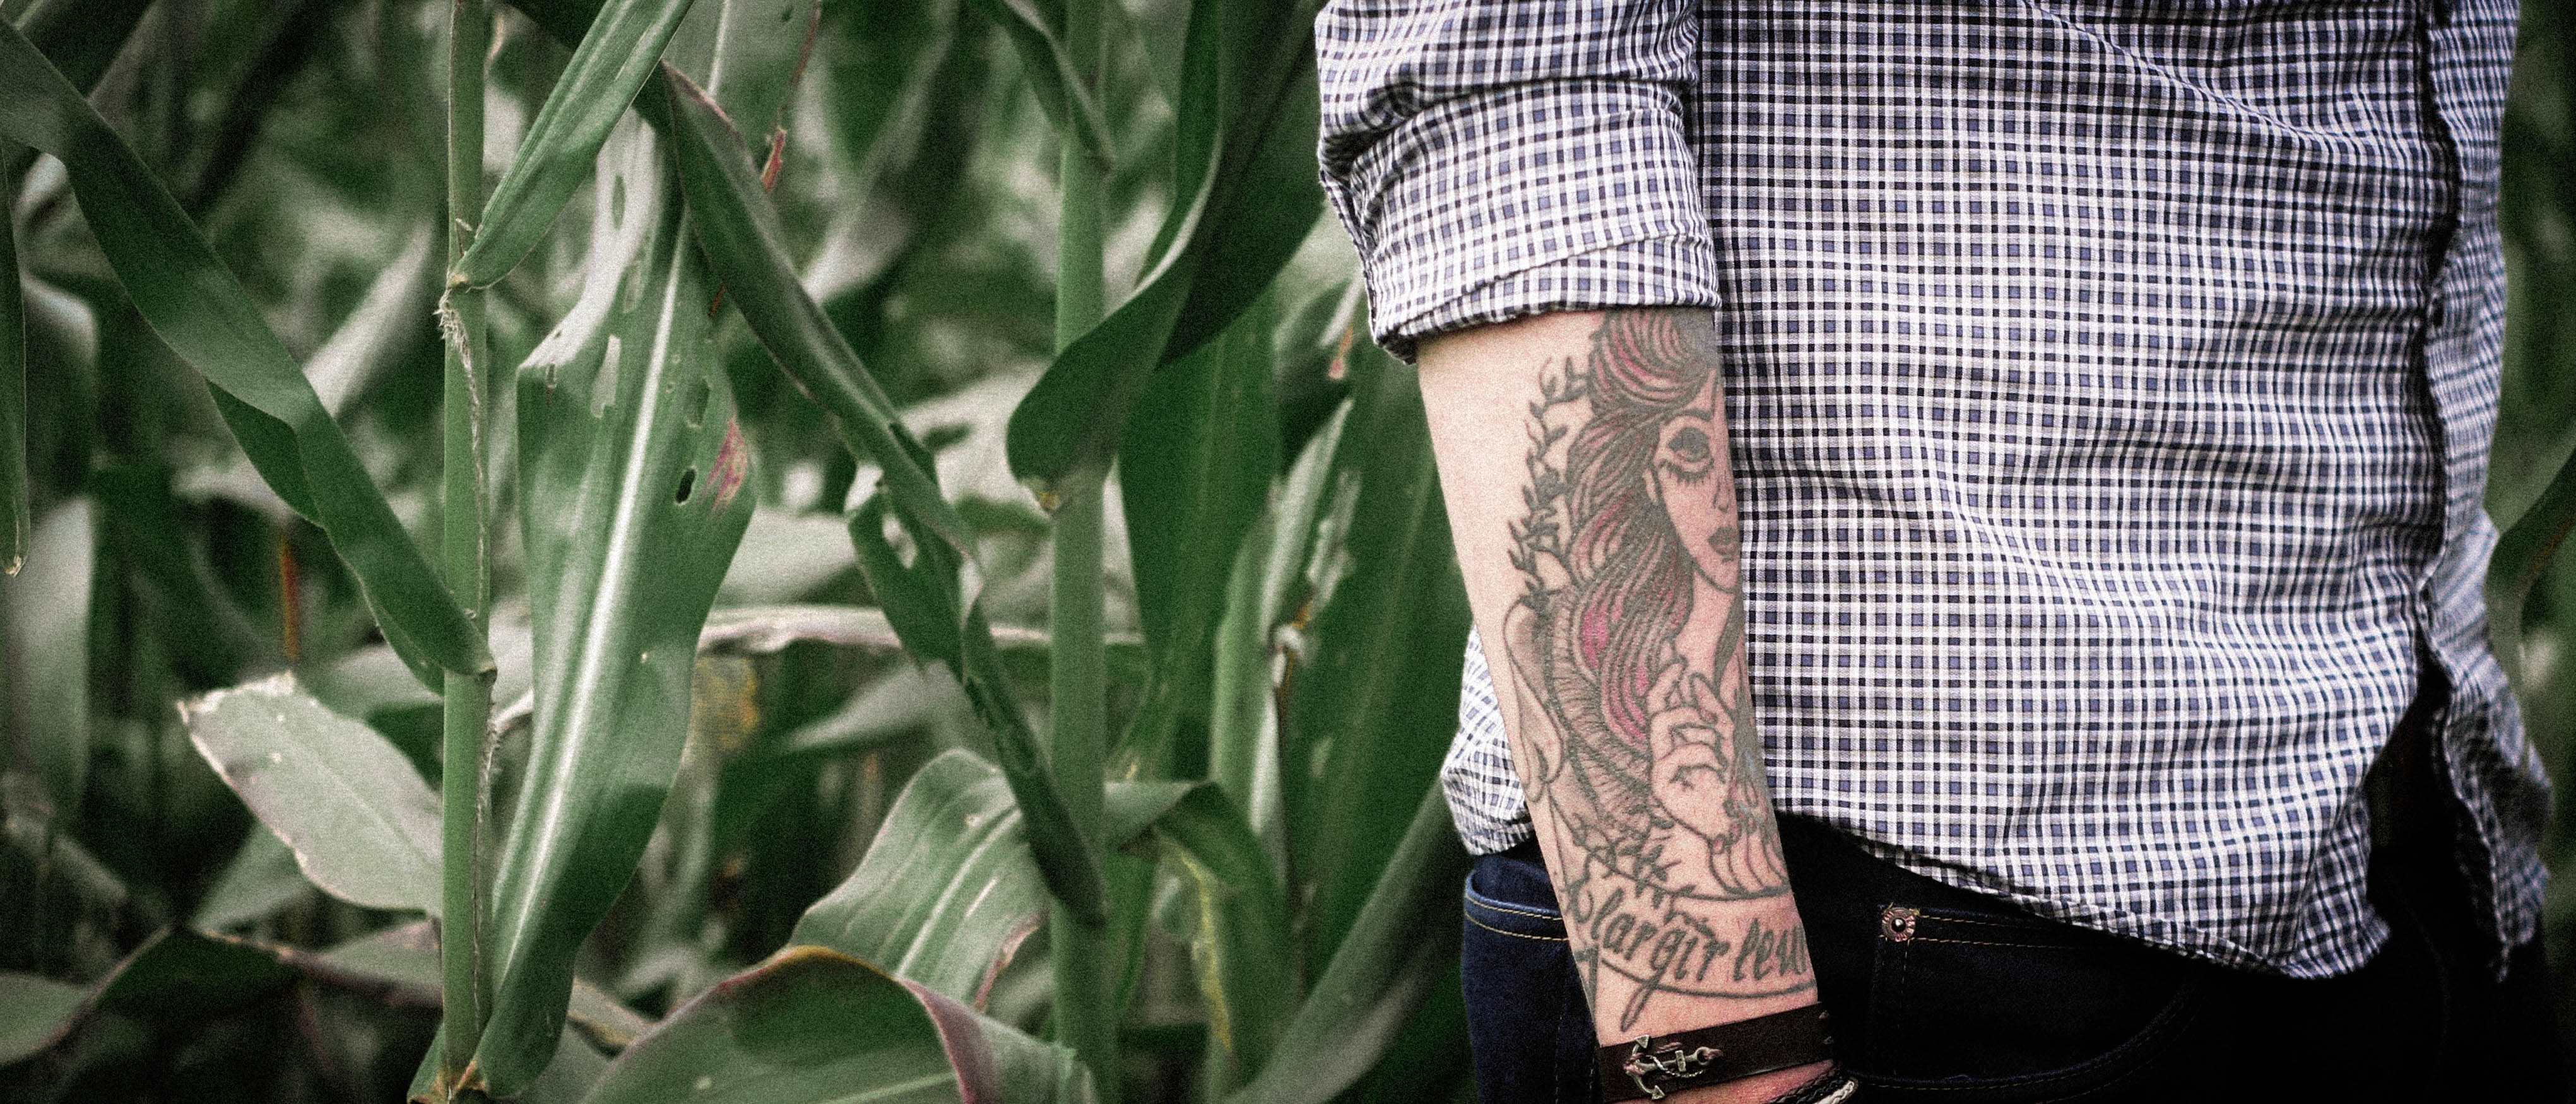 person with arm tattoo walking near green grass